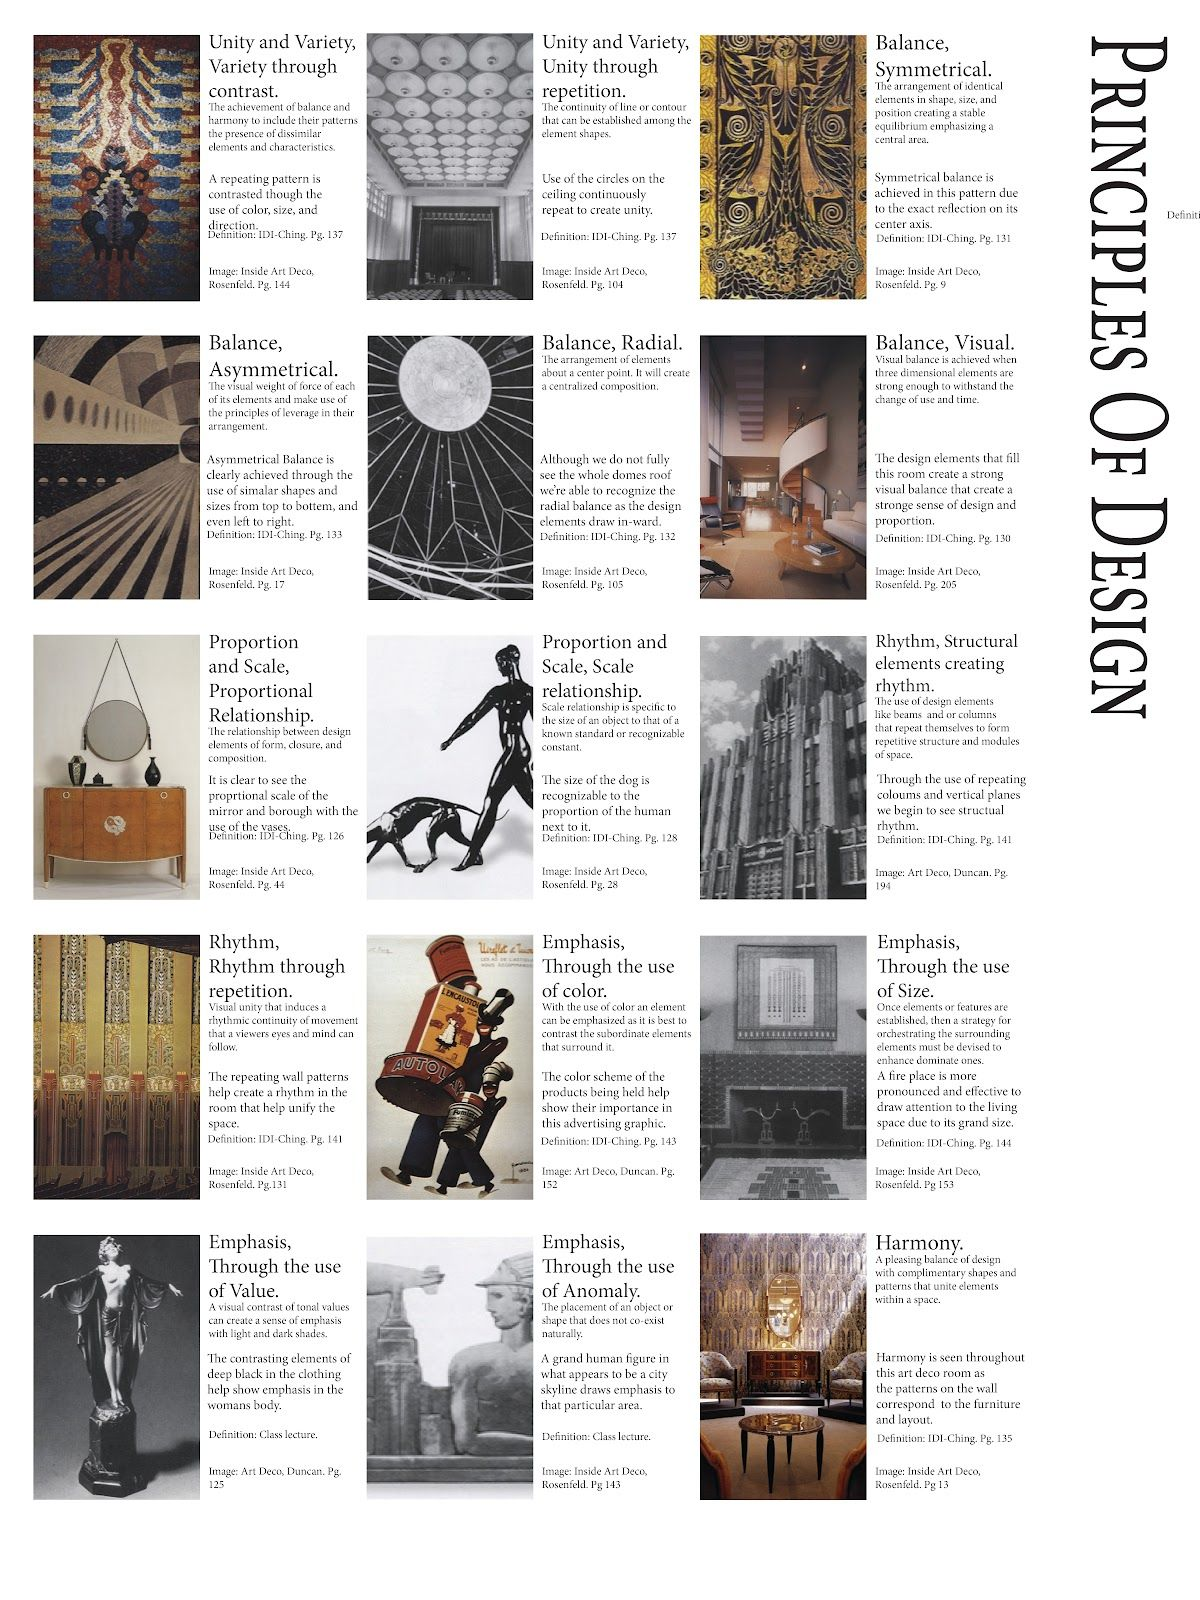 Assignment 1 Elements And Principles Of Design Posters Were A Great Foundational Tool For The